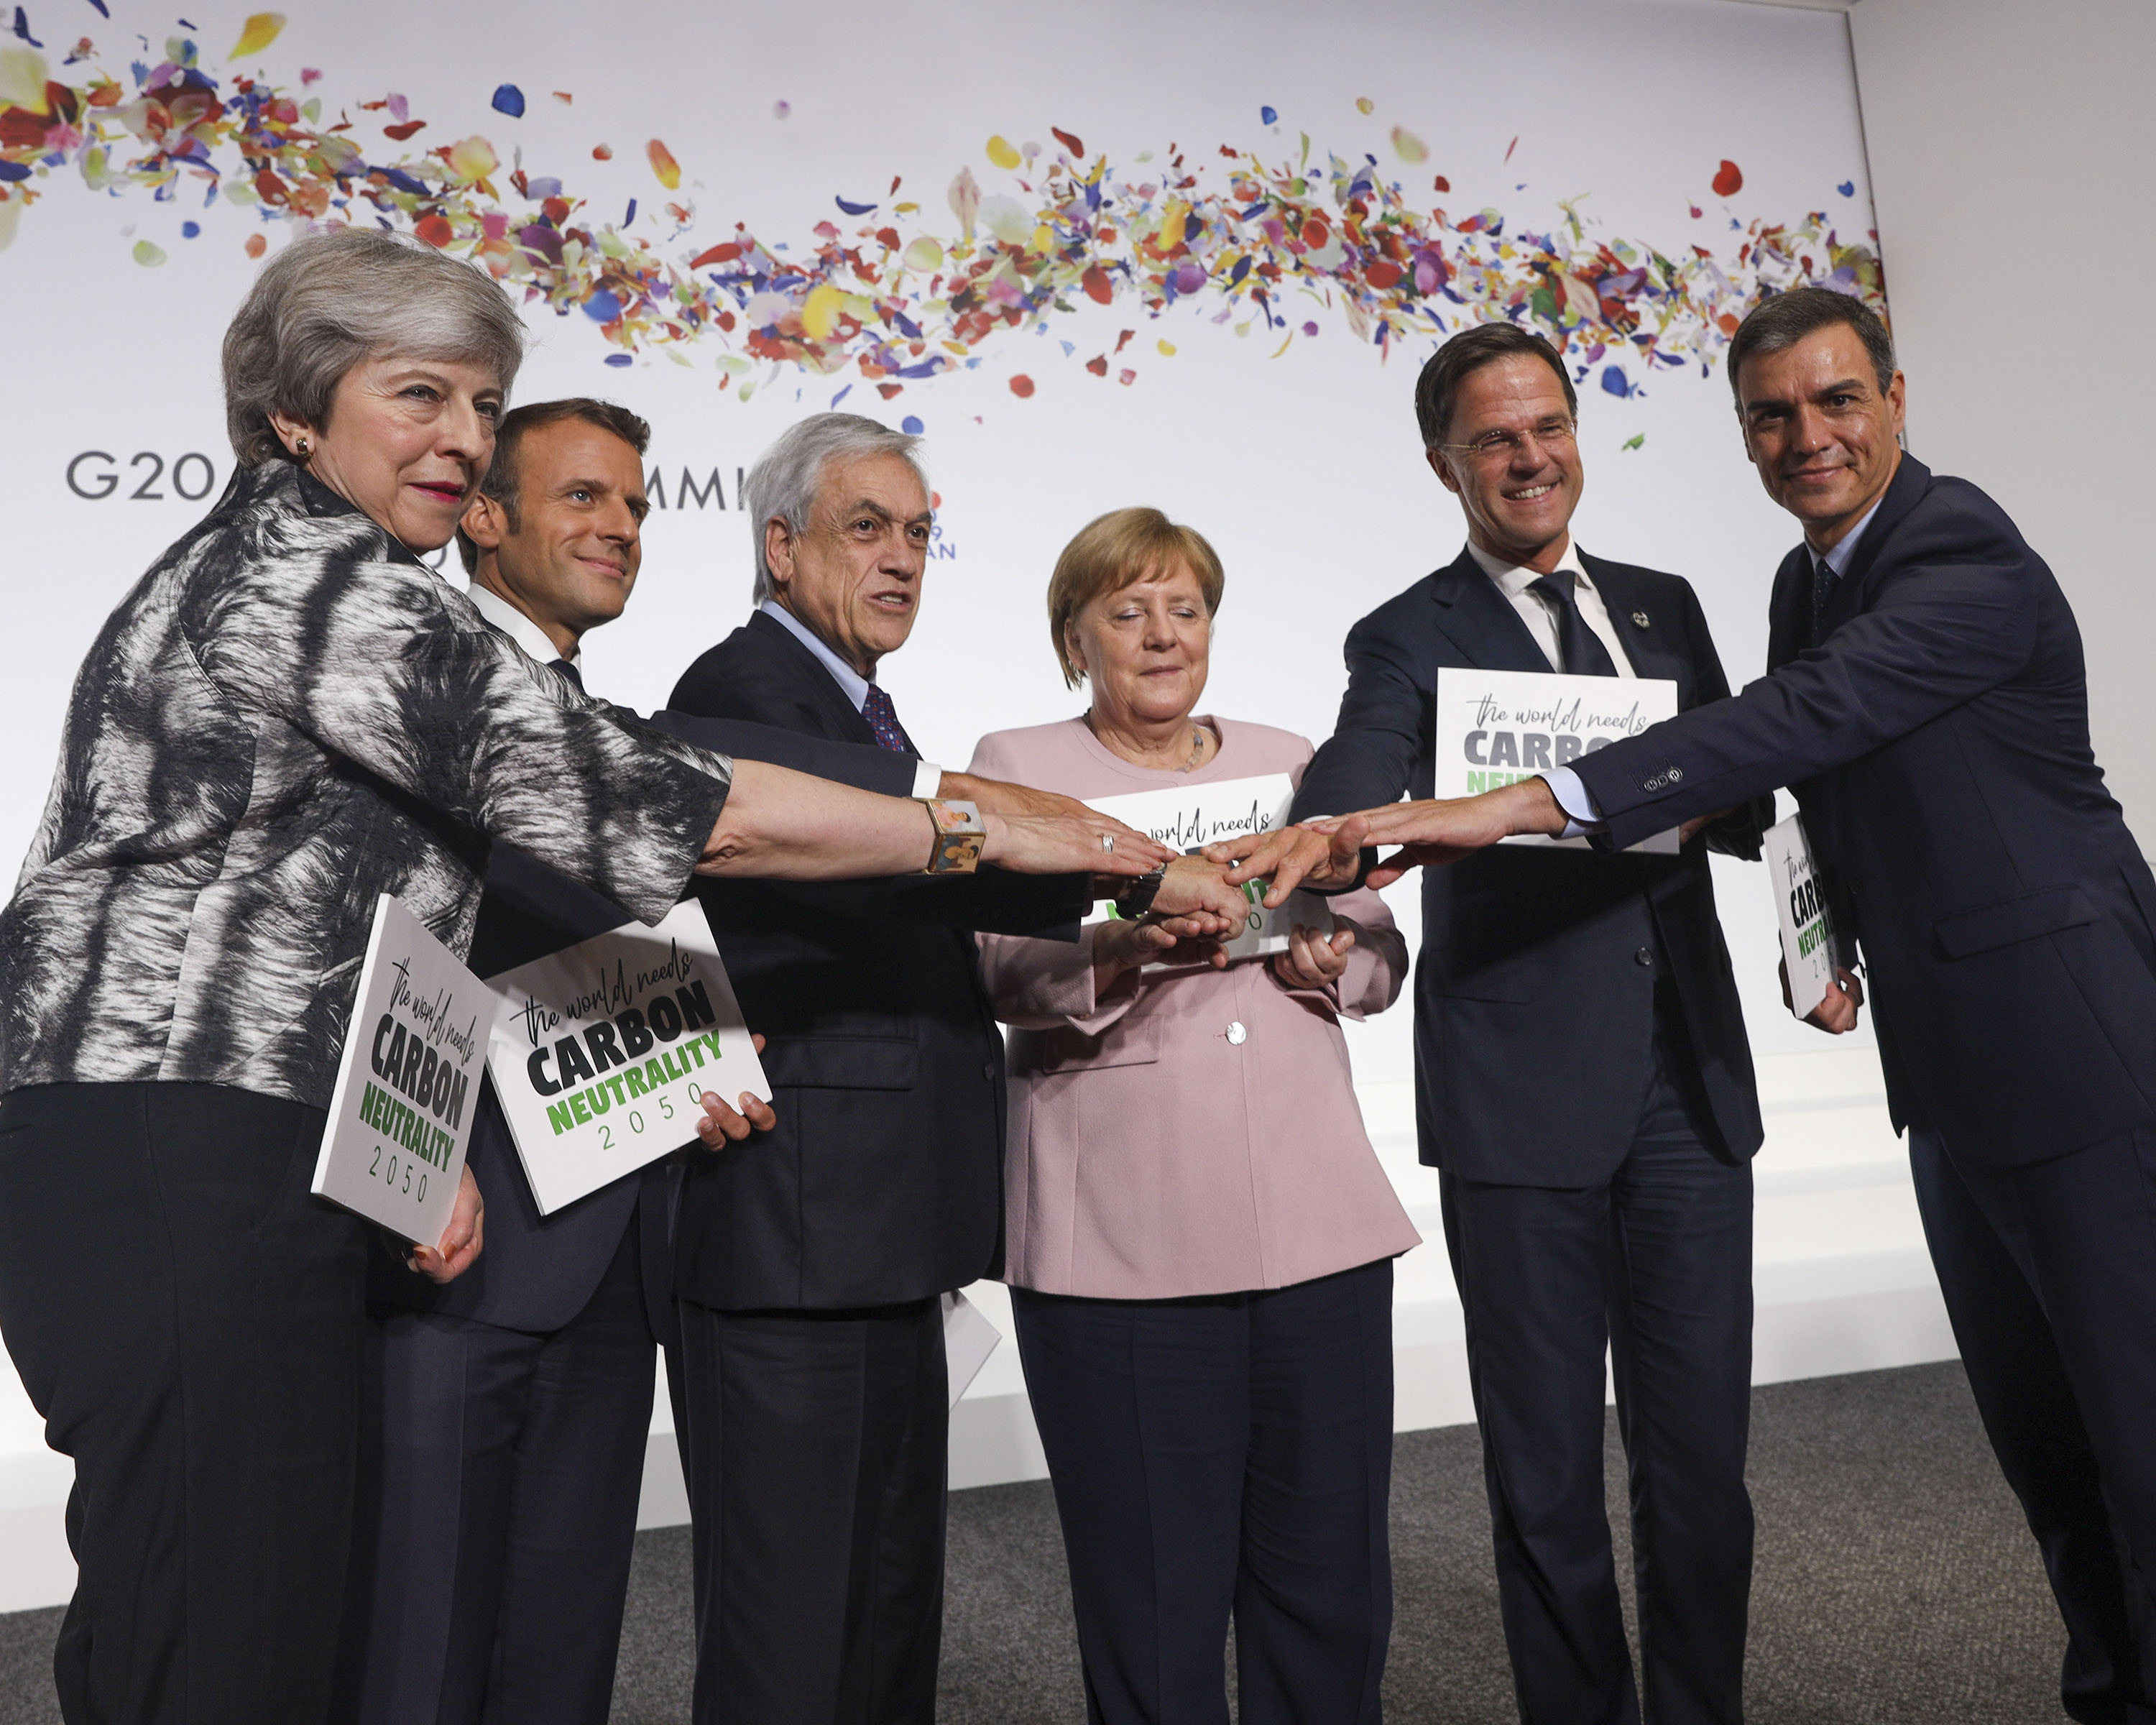 European leaders at the G20 Summit in Osaka